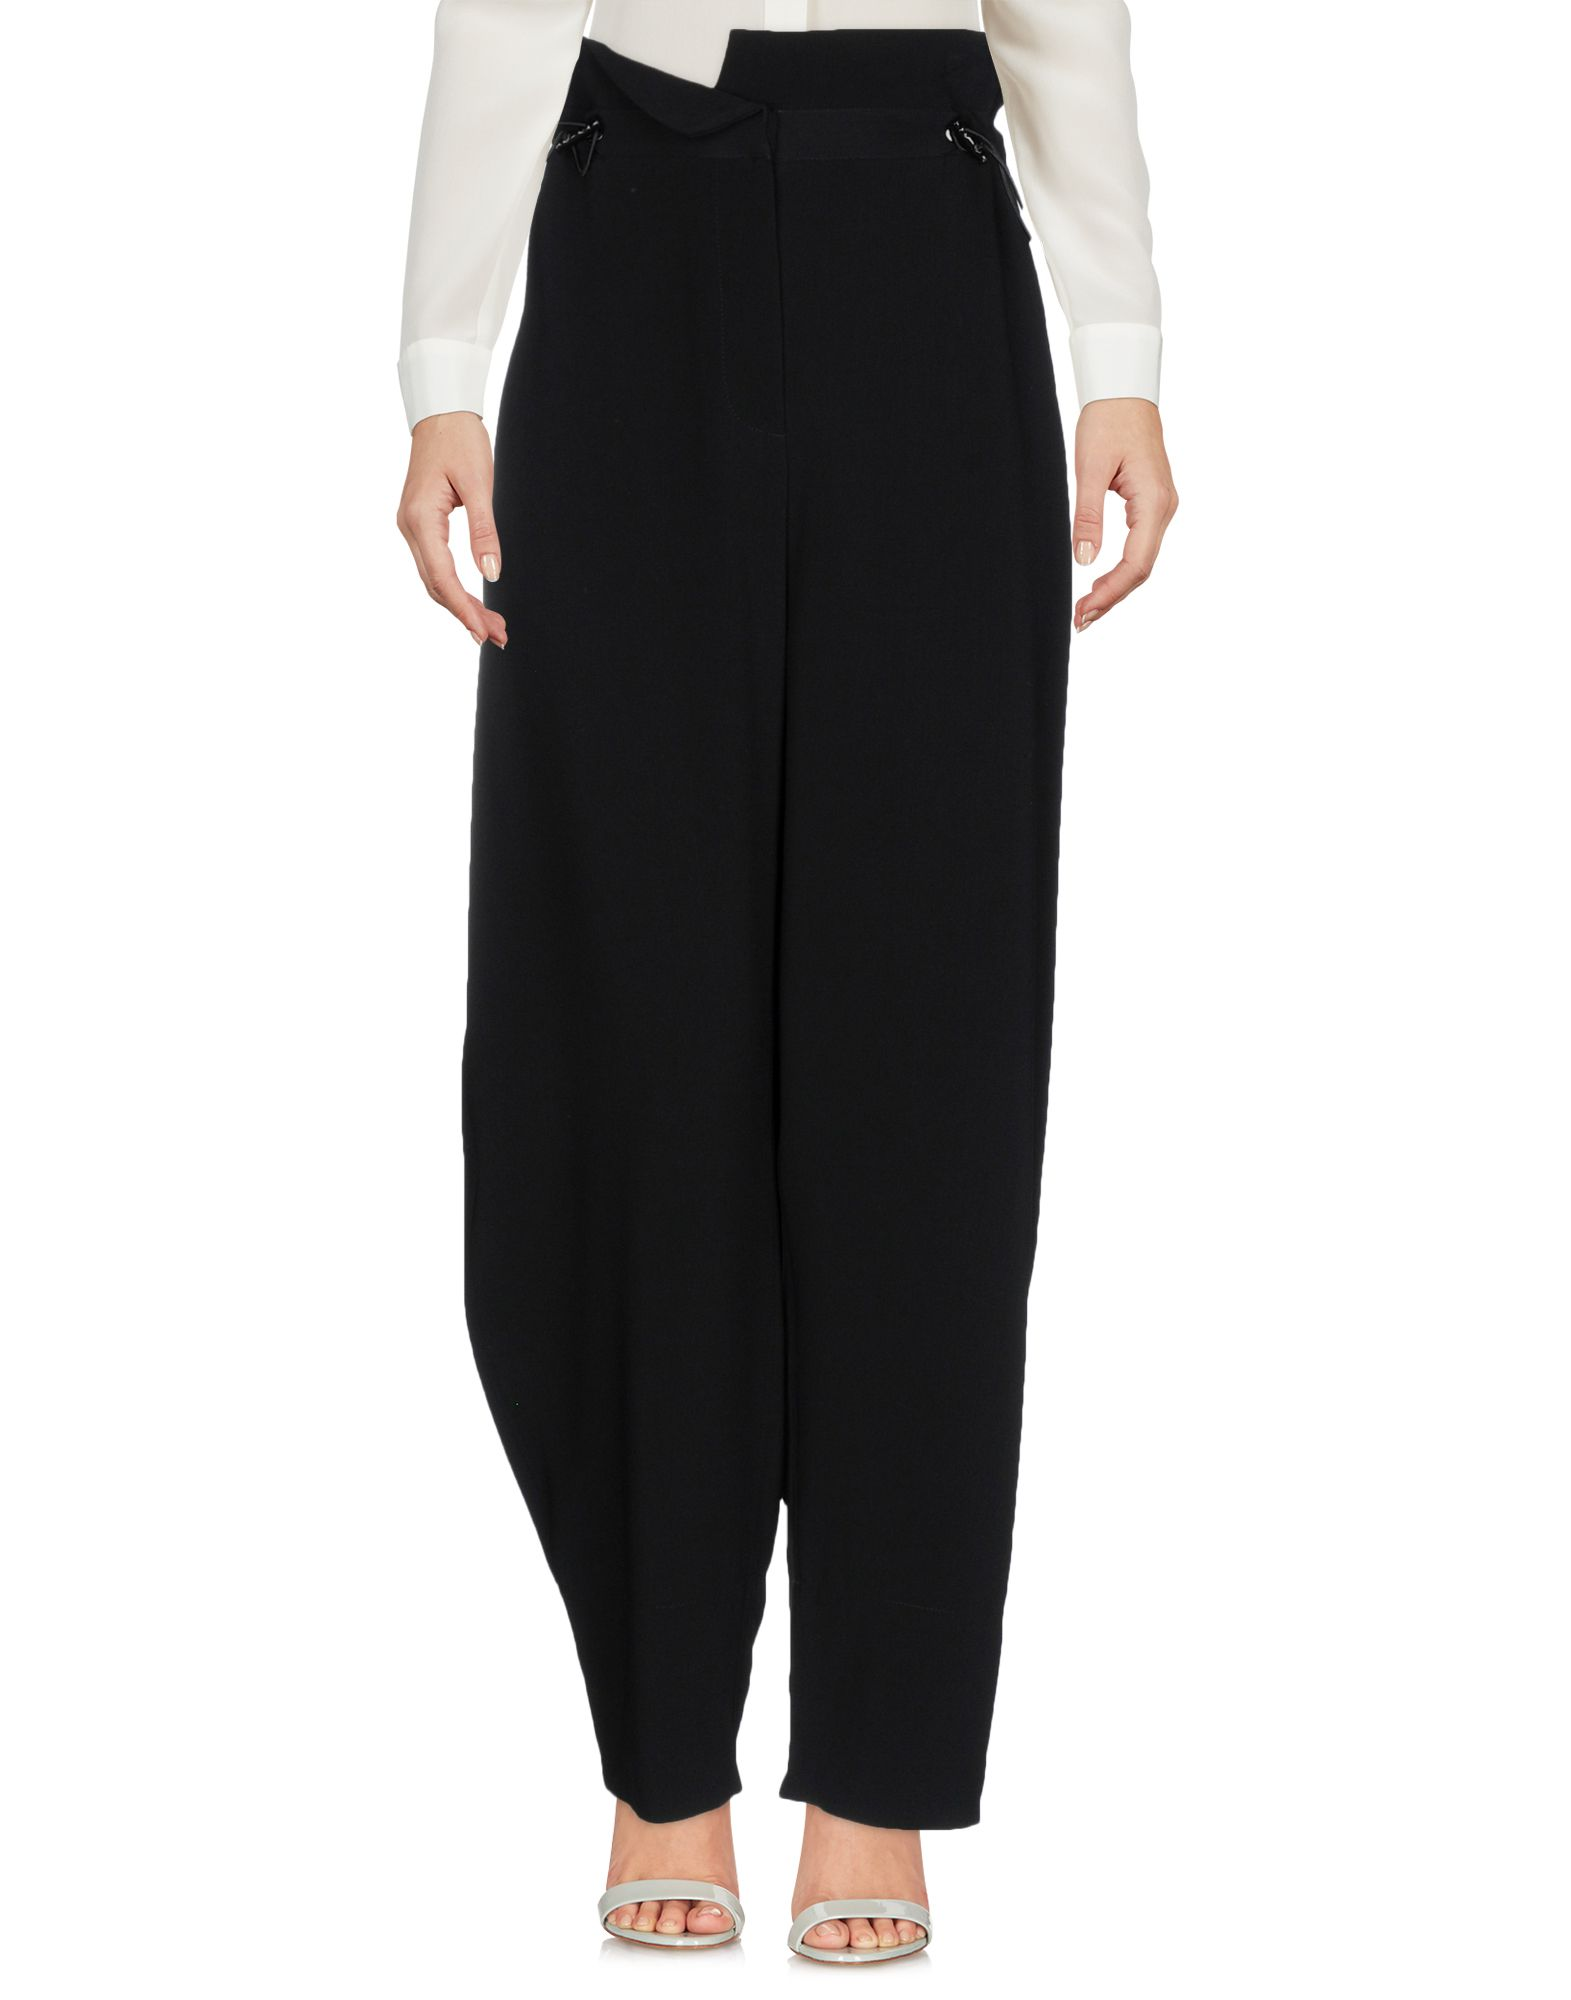 Pantalone Stella Mccartney Donna - Acquista online su